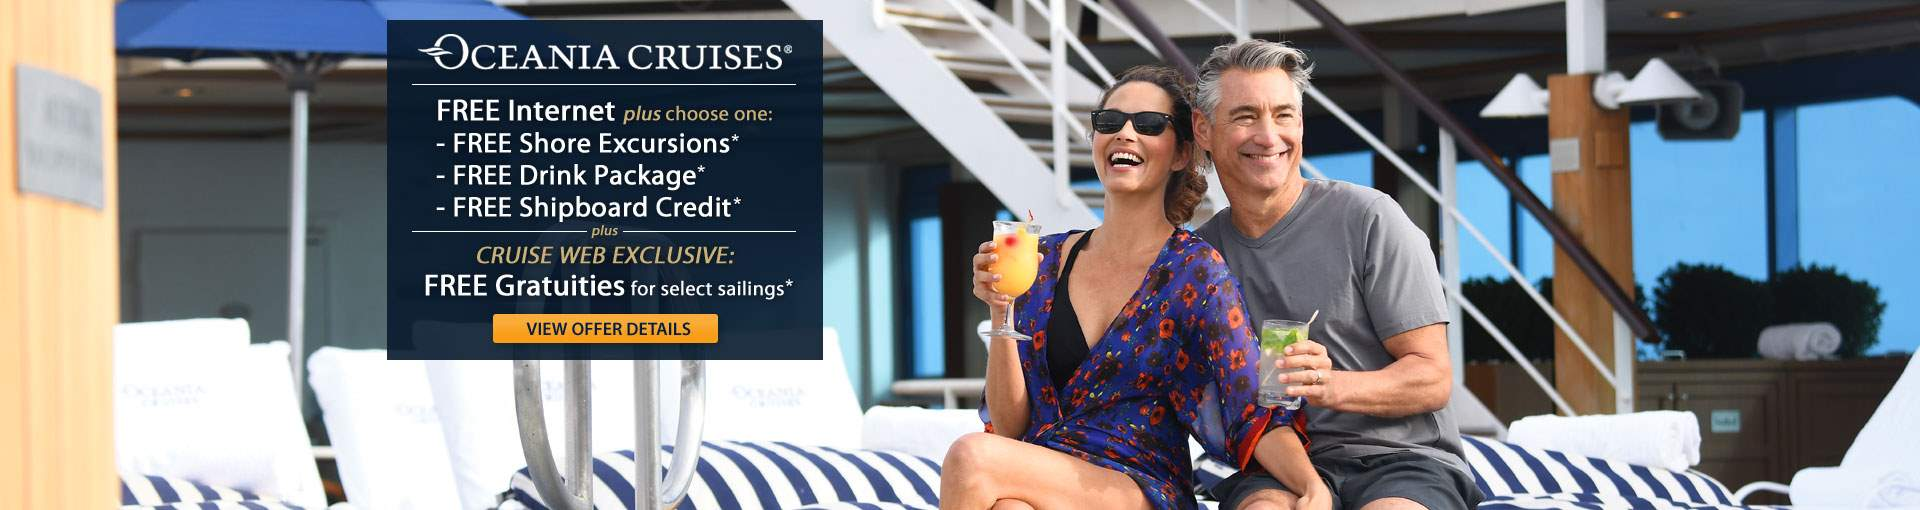 Oceania Cruises: OLife Choice Cruise Sale